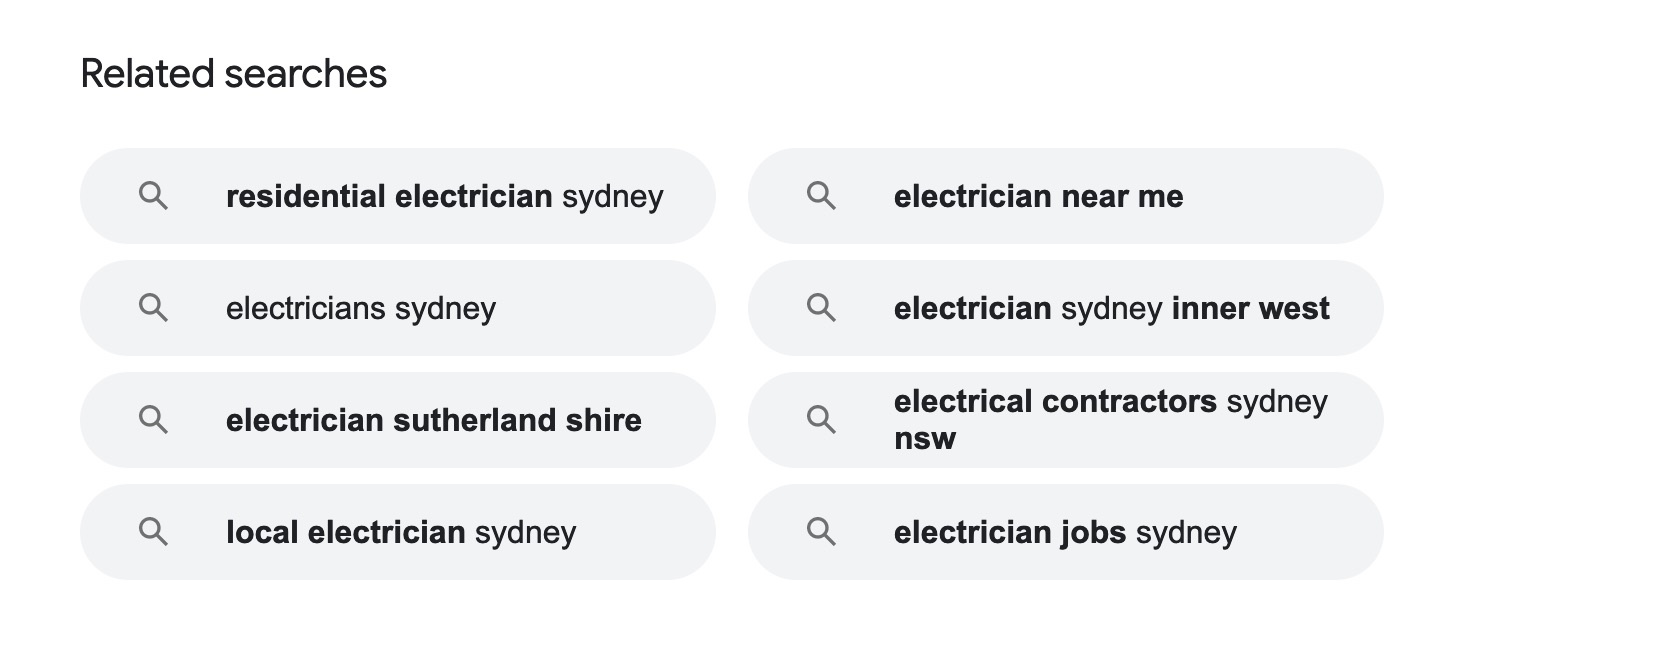 related searches example on google